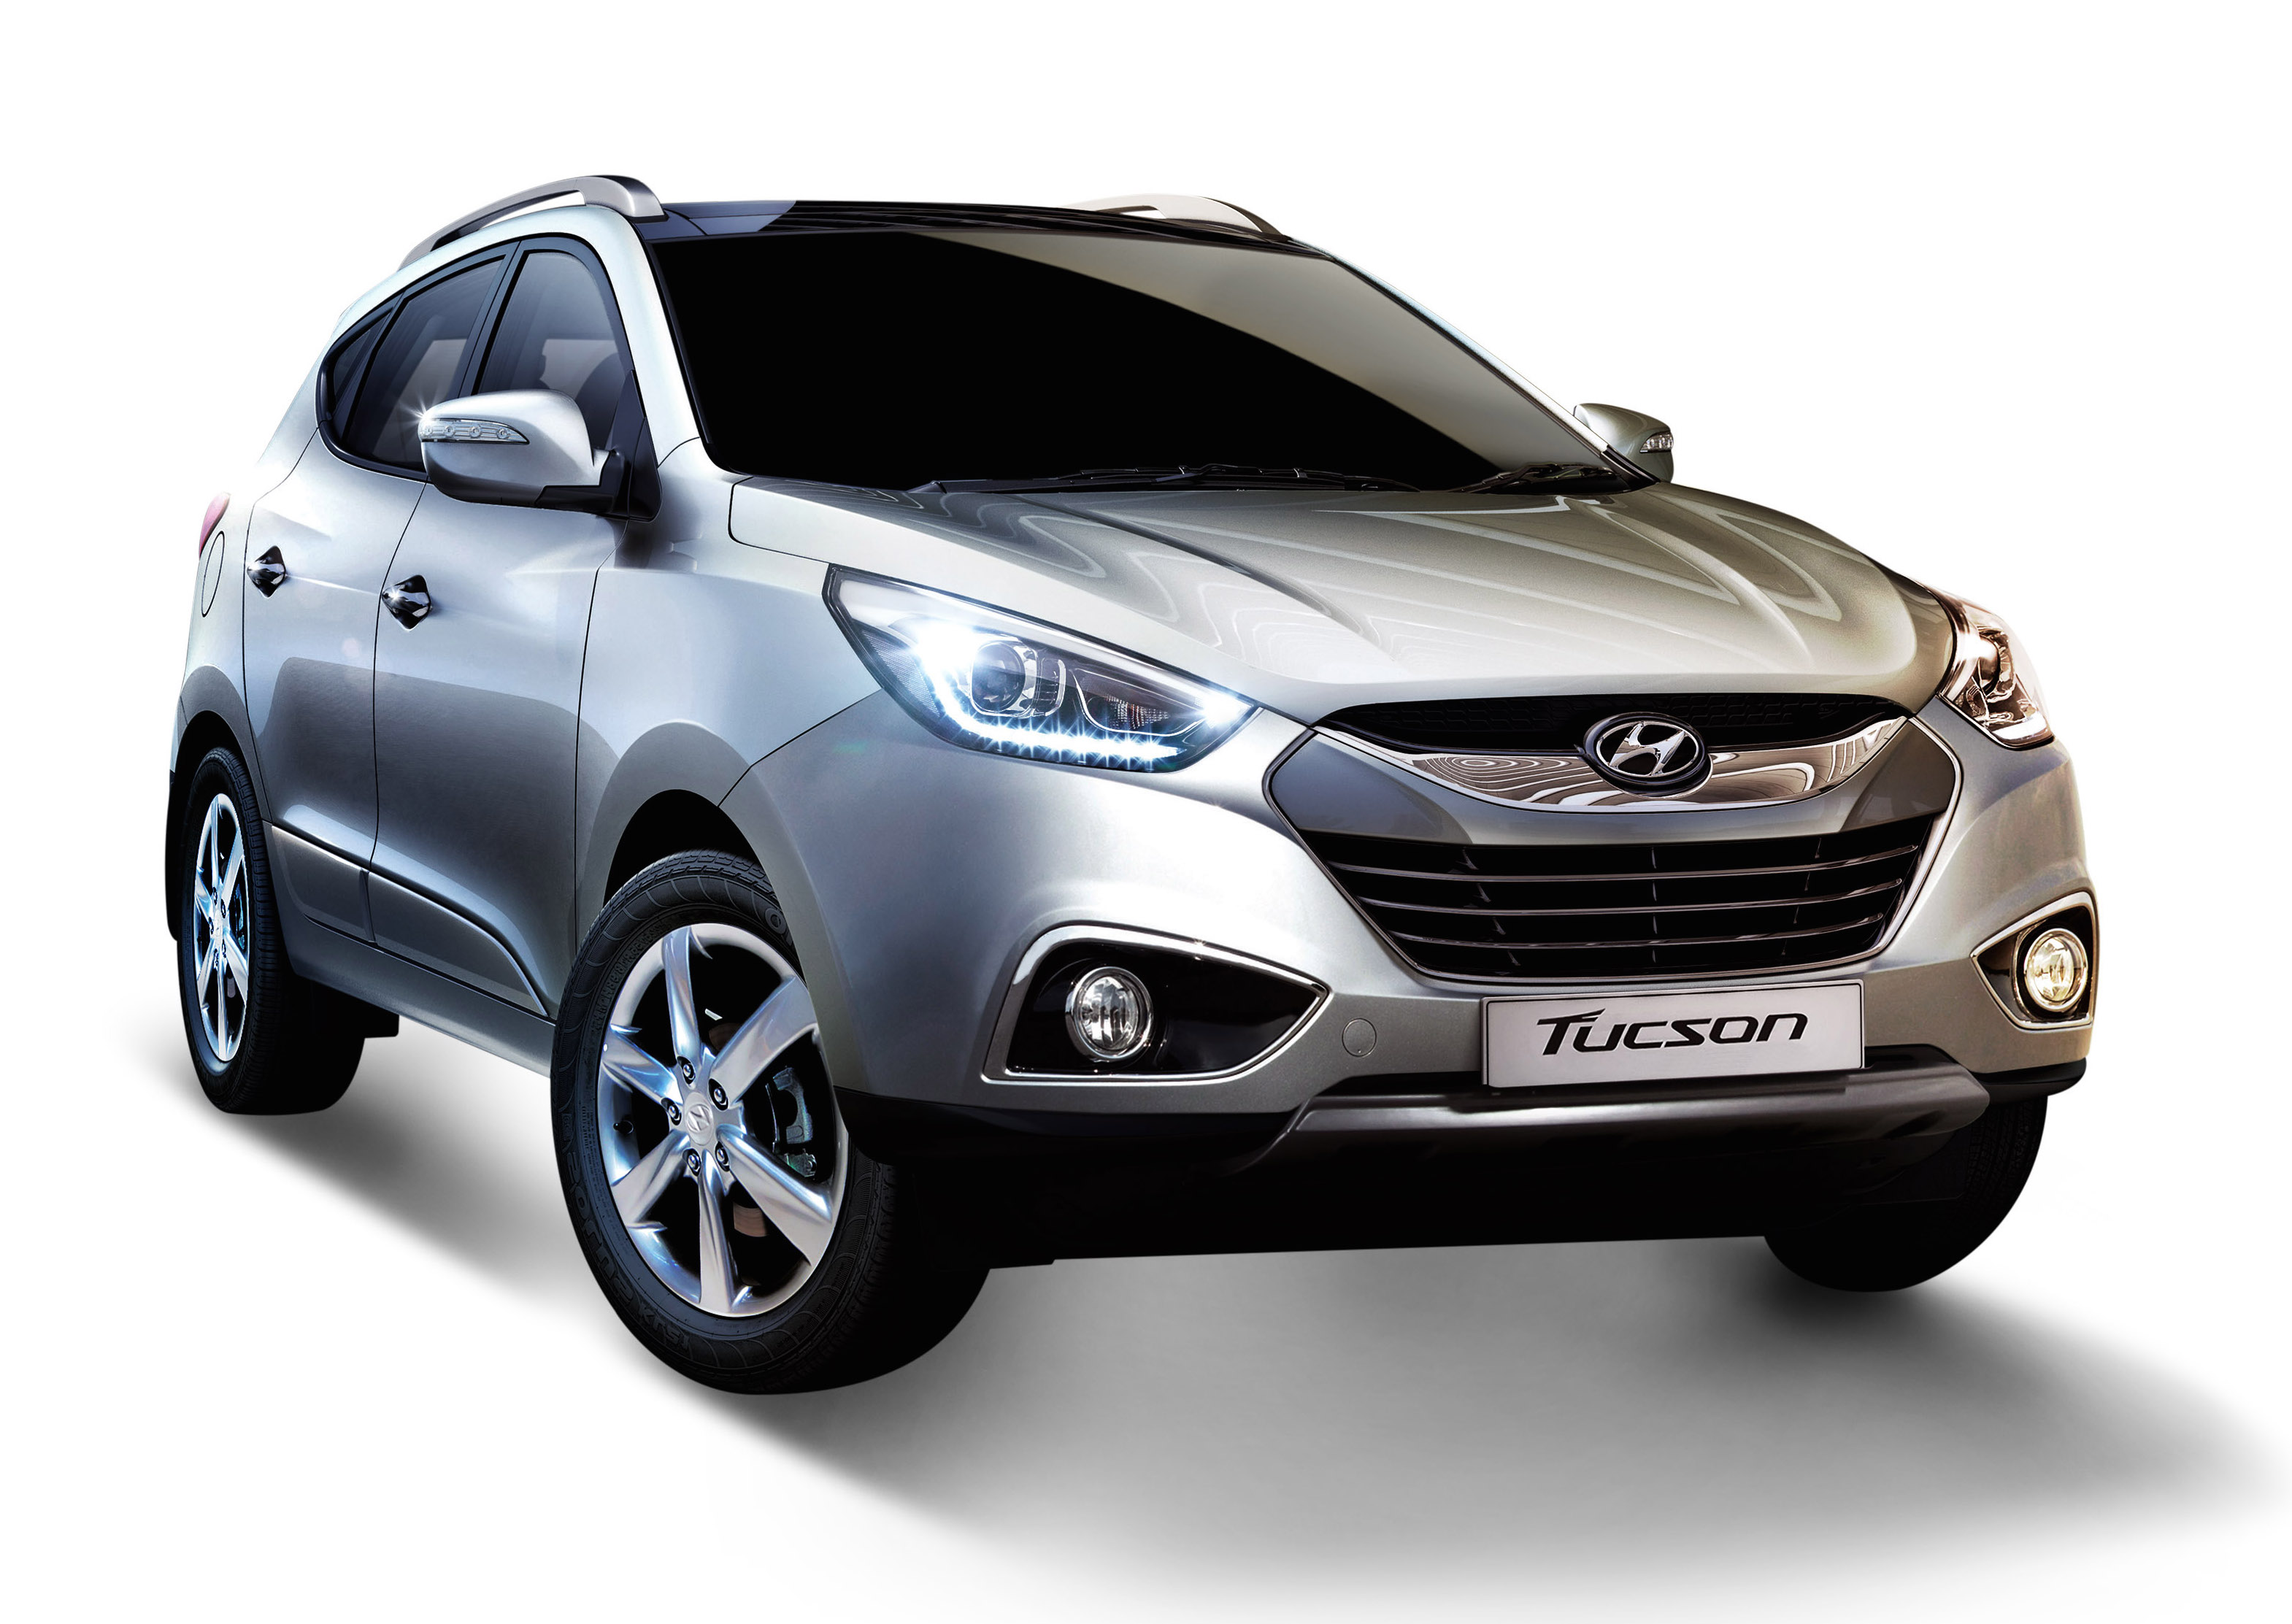 hyundai tucson now ckd priced lower from rm116k. Black Bedroom Furniture Sets. Home Design Ideas